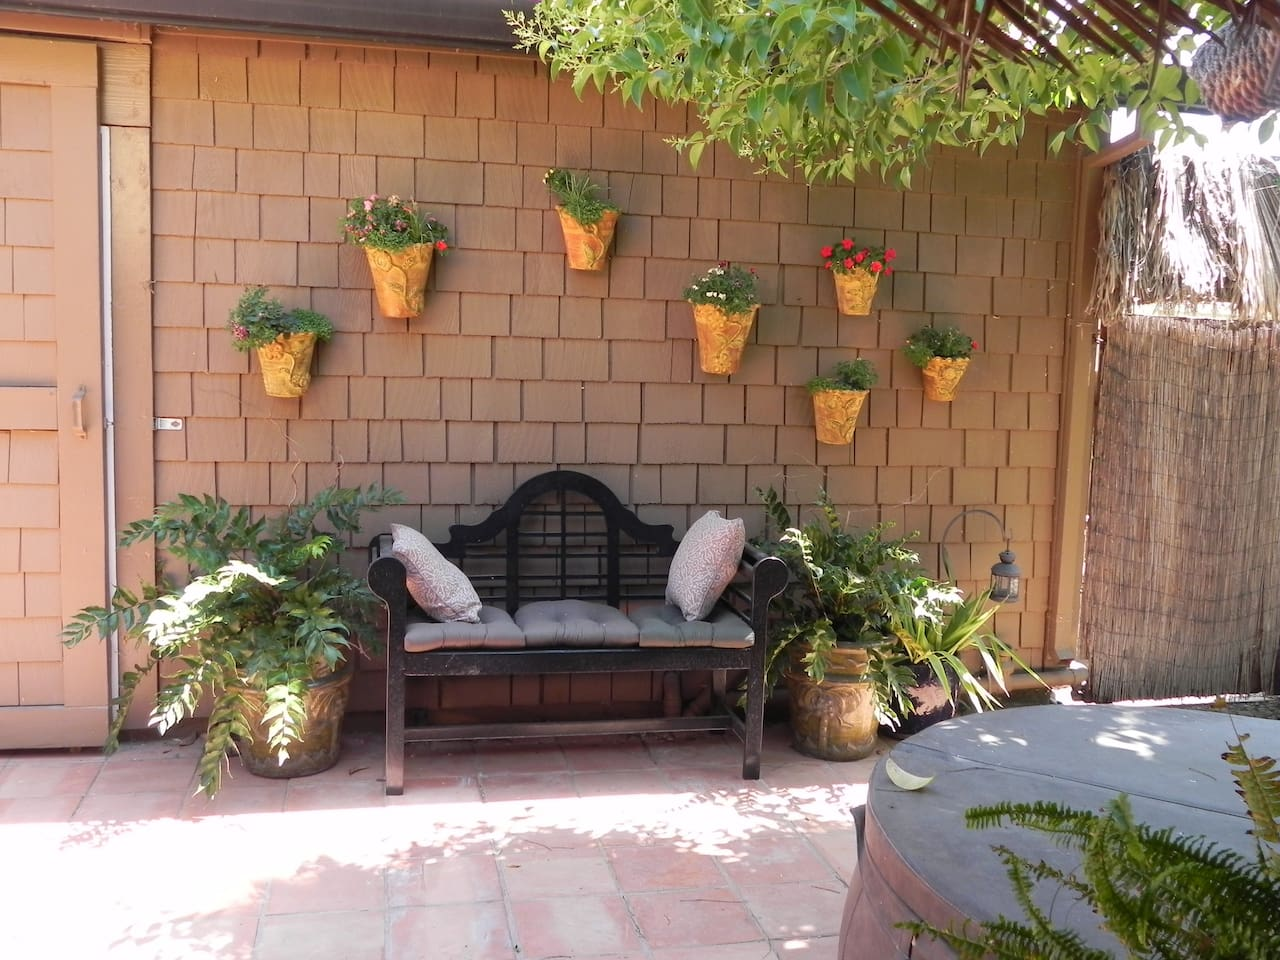 The entrance to the Hidaway's patio